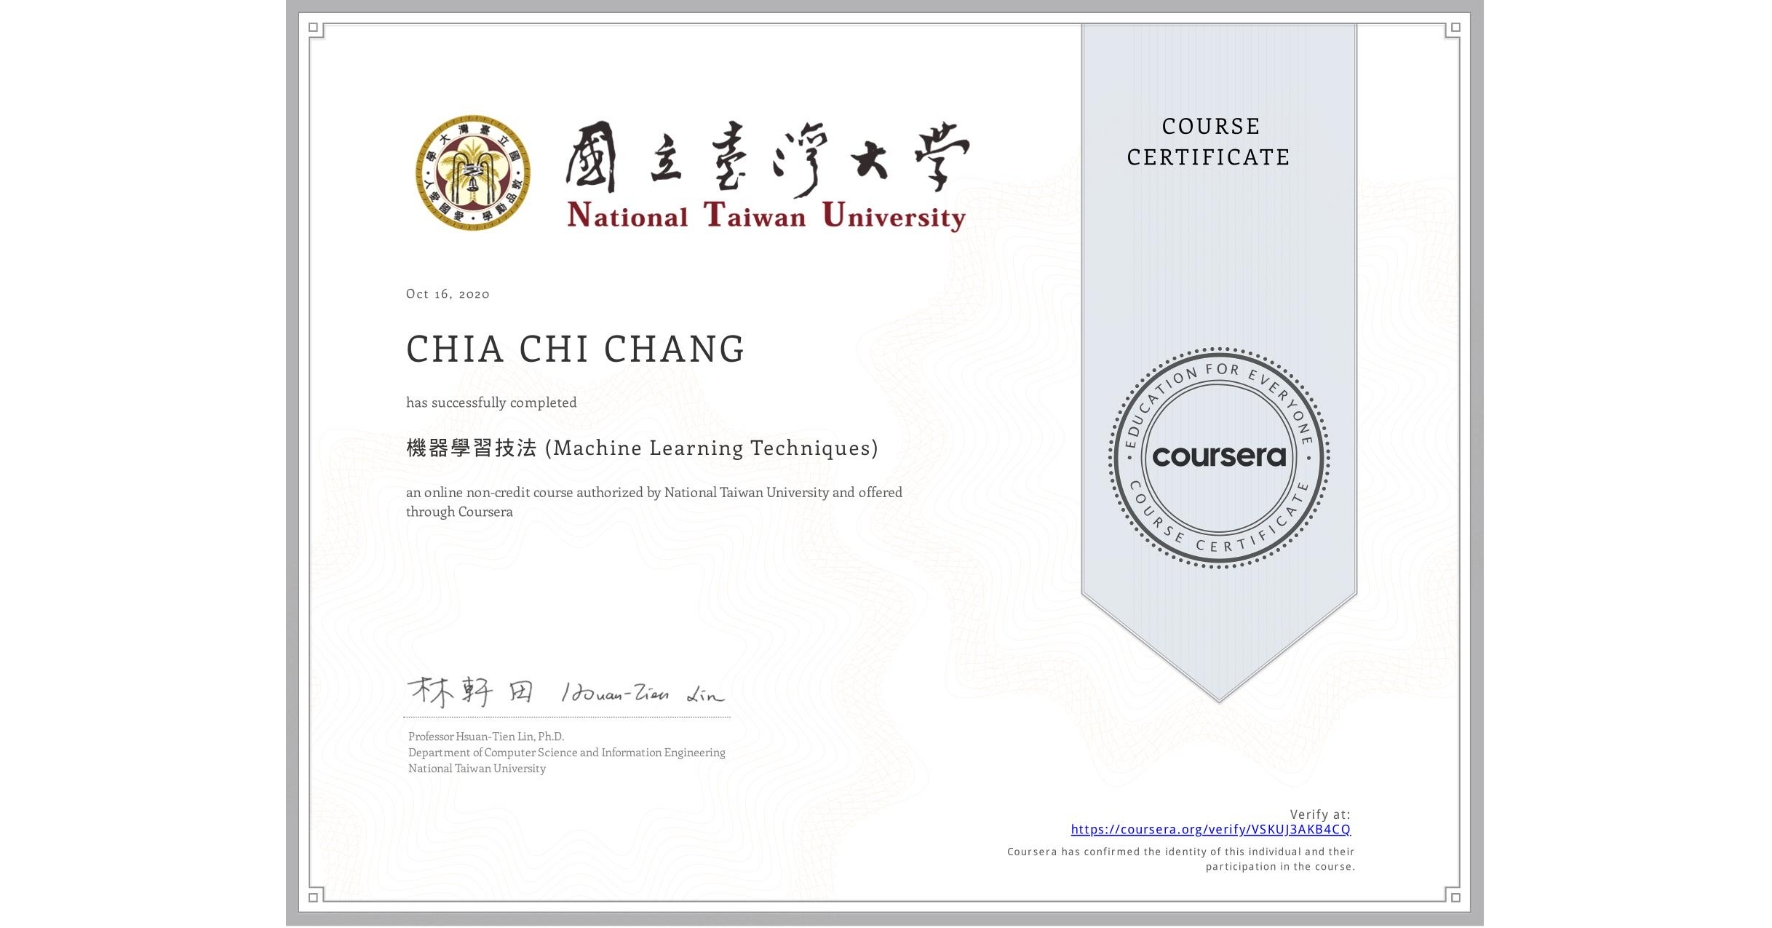 View certificate for CHIA CHI  CHANG, 機器學習技法 (Machine Learning Techniques), an online non-credit course authorized by National Taiwan University and offered through Coursera